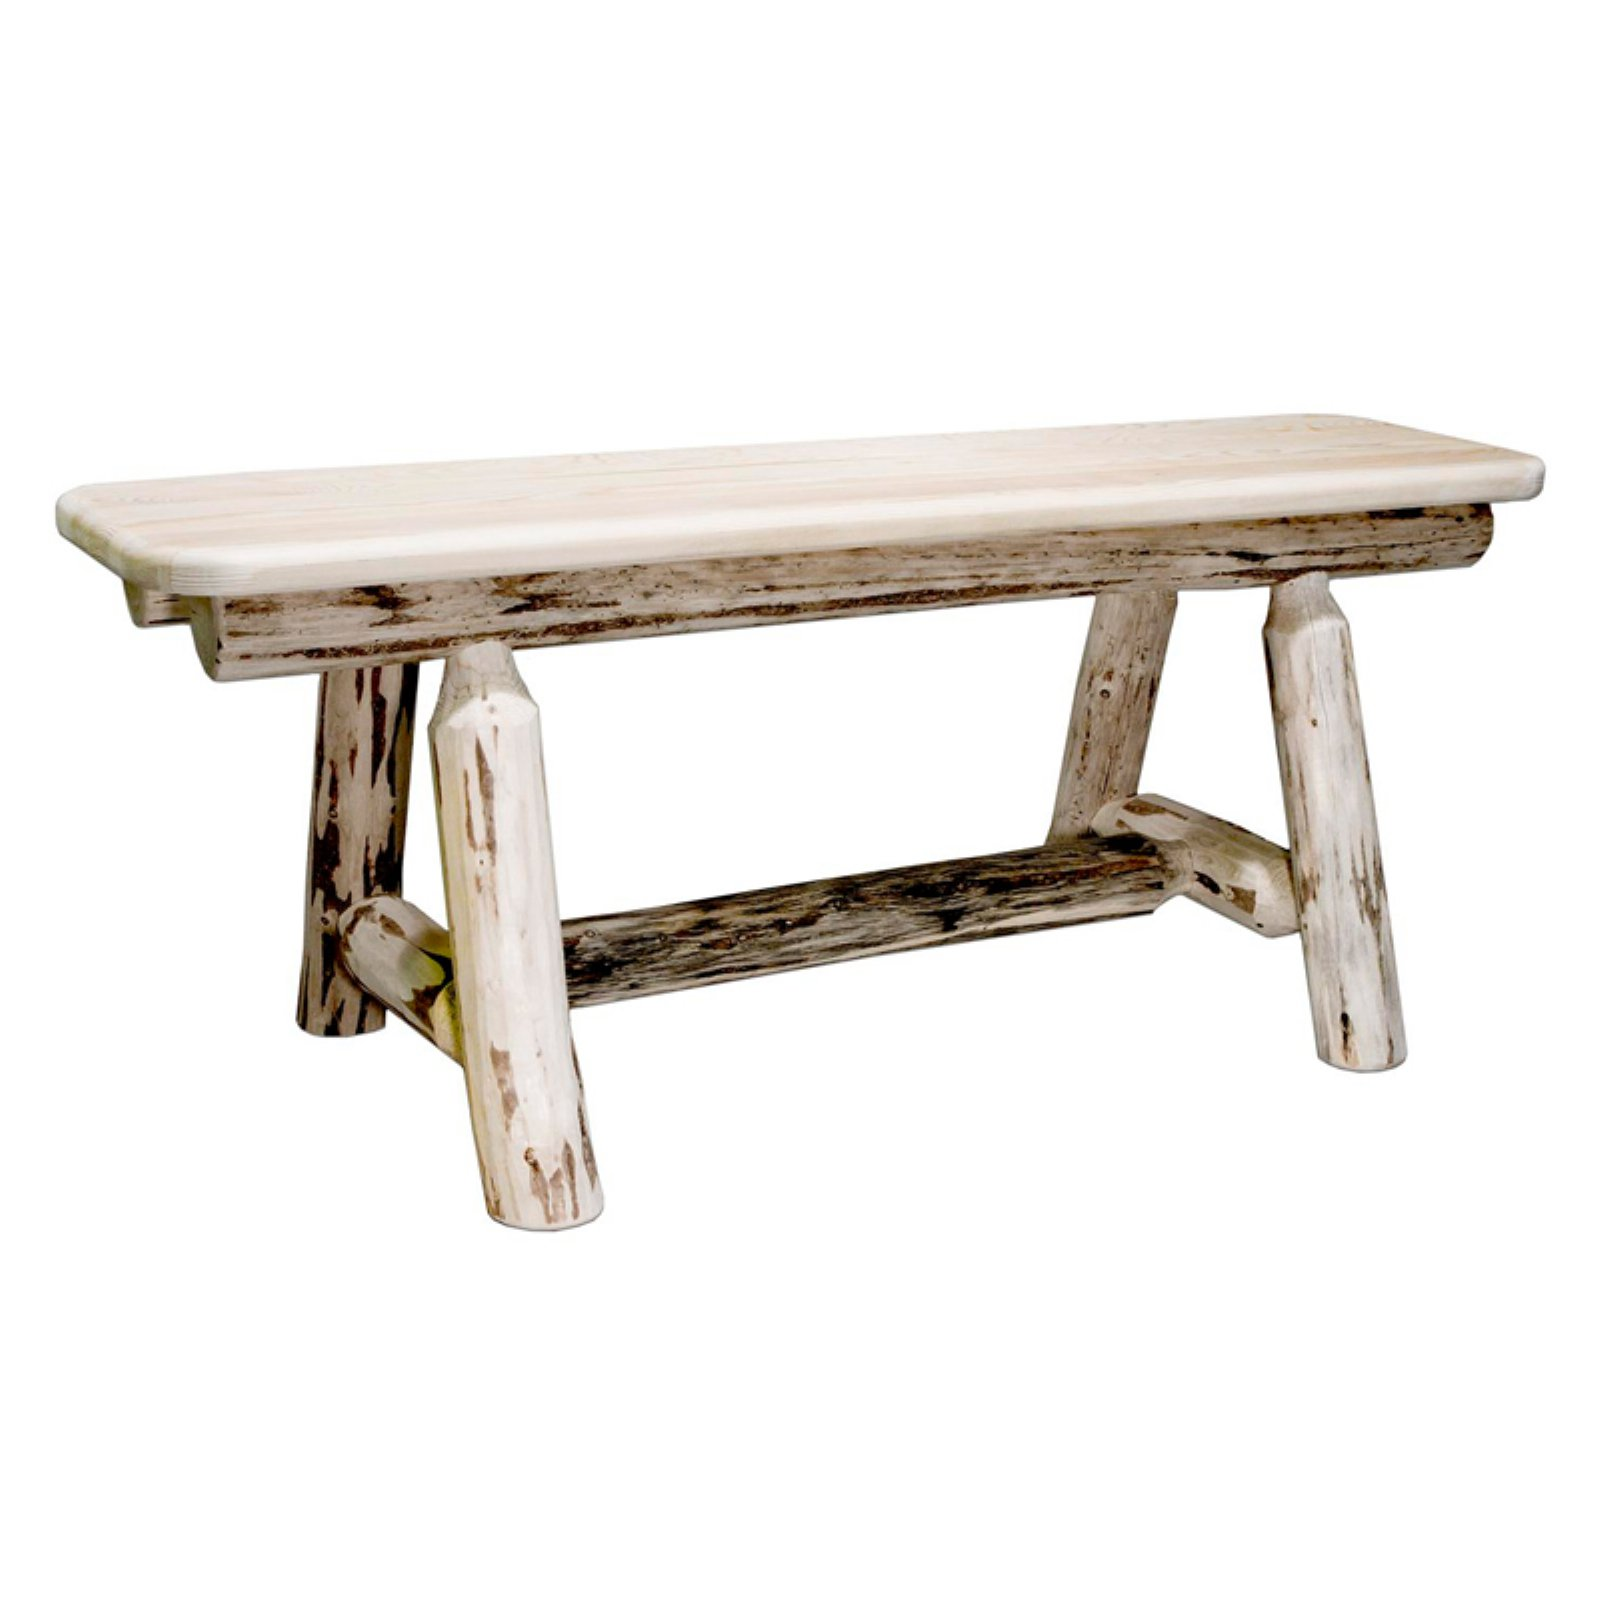 Montana Woodworks Plank Style Bench - 45 in.